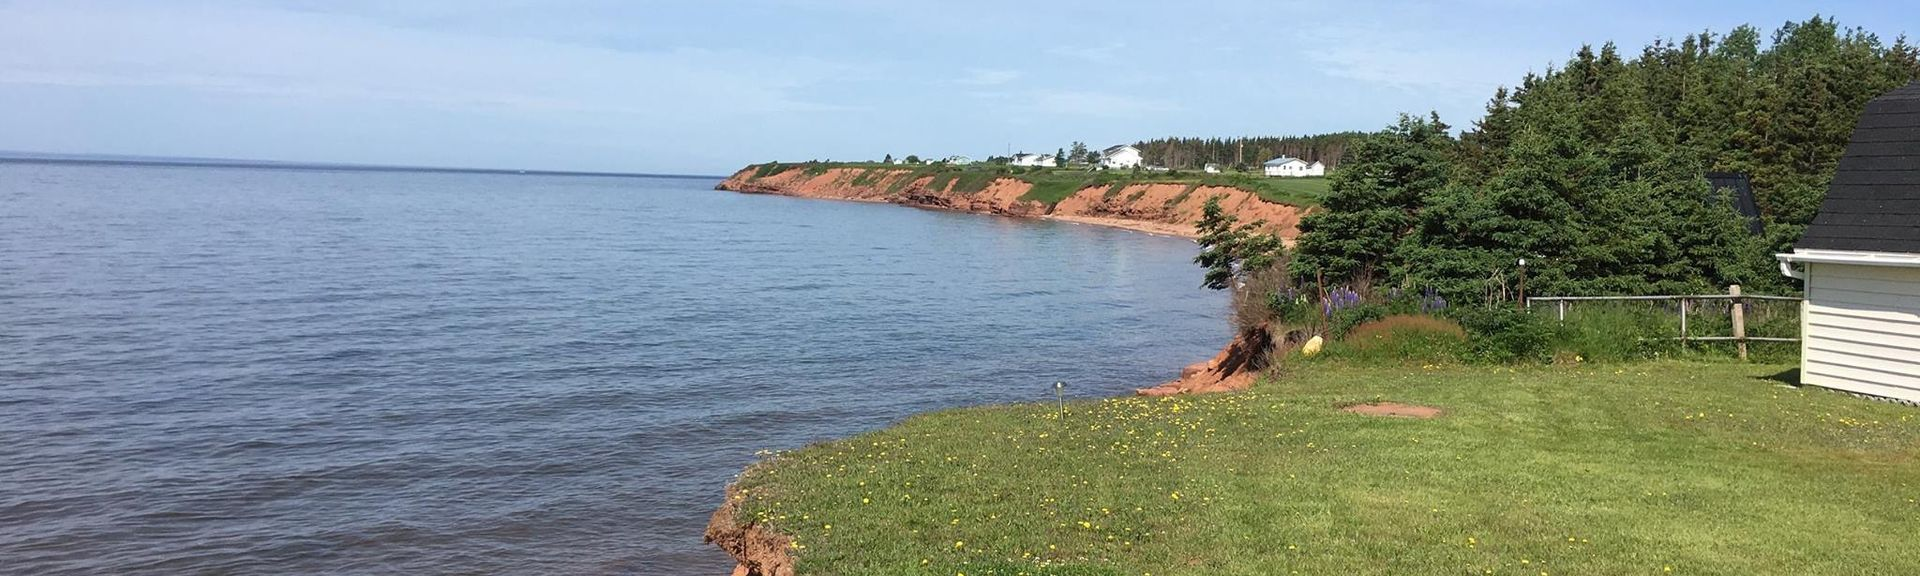 Caribou Lighthouse, Pictou, Nova Scotia, Canada